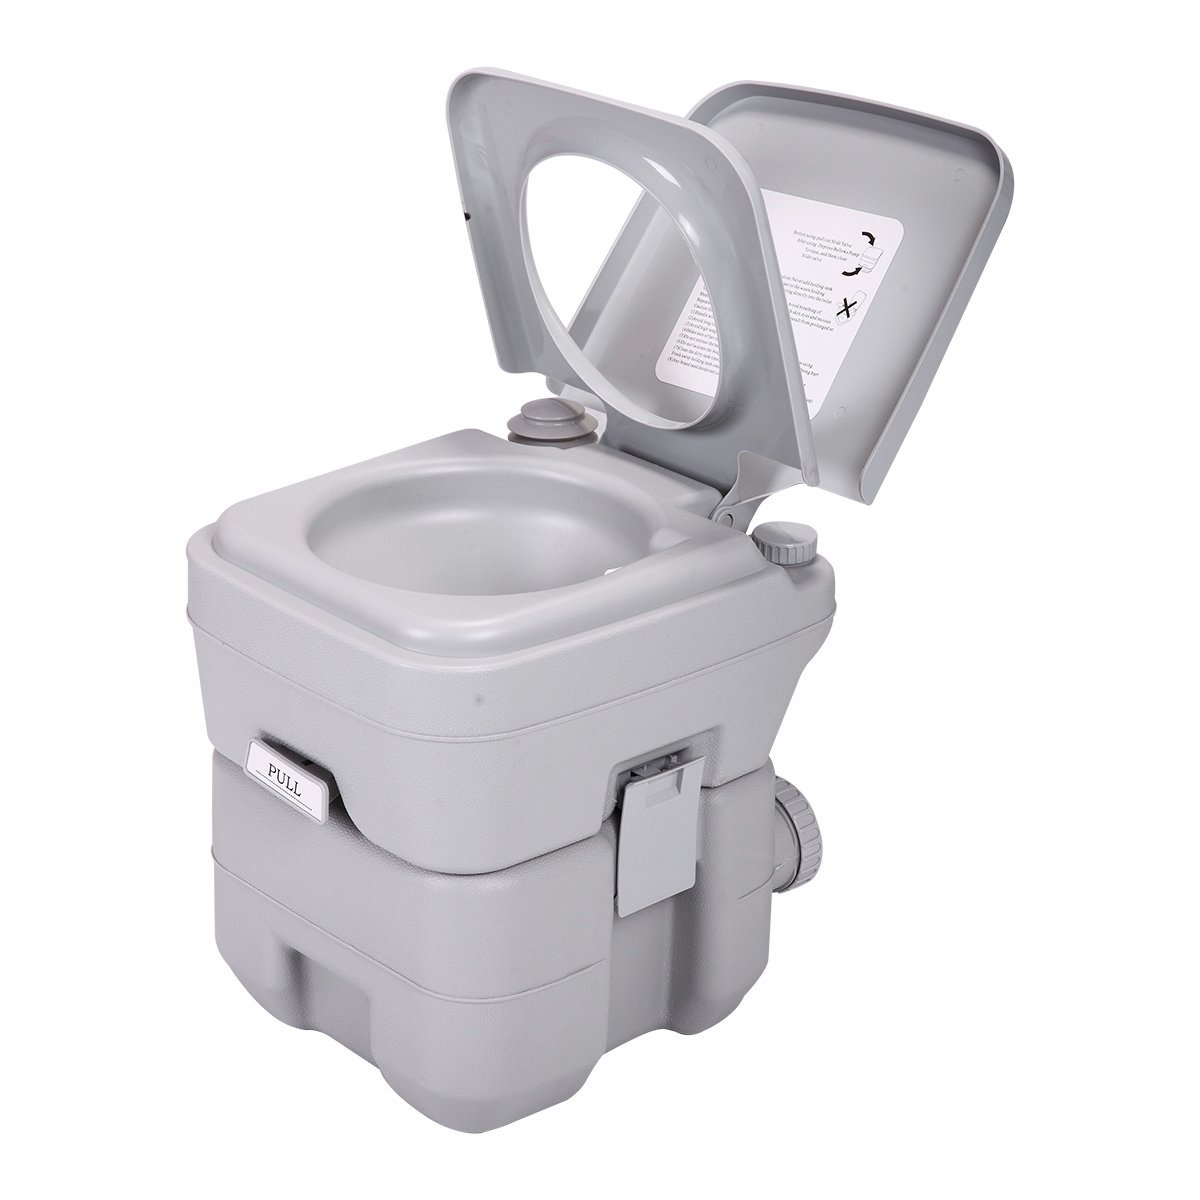 20L PORTABLE CARAVAN MOTORHOME CAMPING TOILET with FULL SIZE SEAT CARRY HANDLES